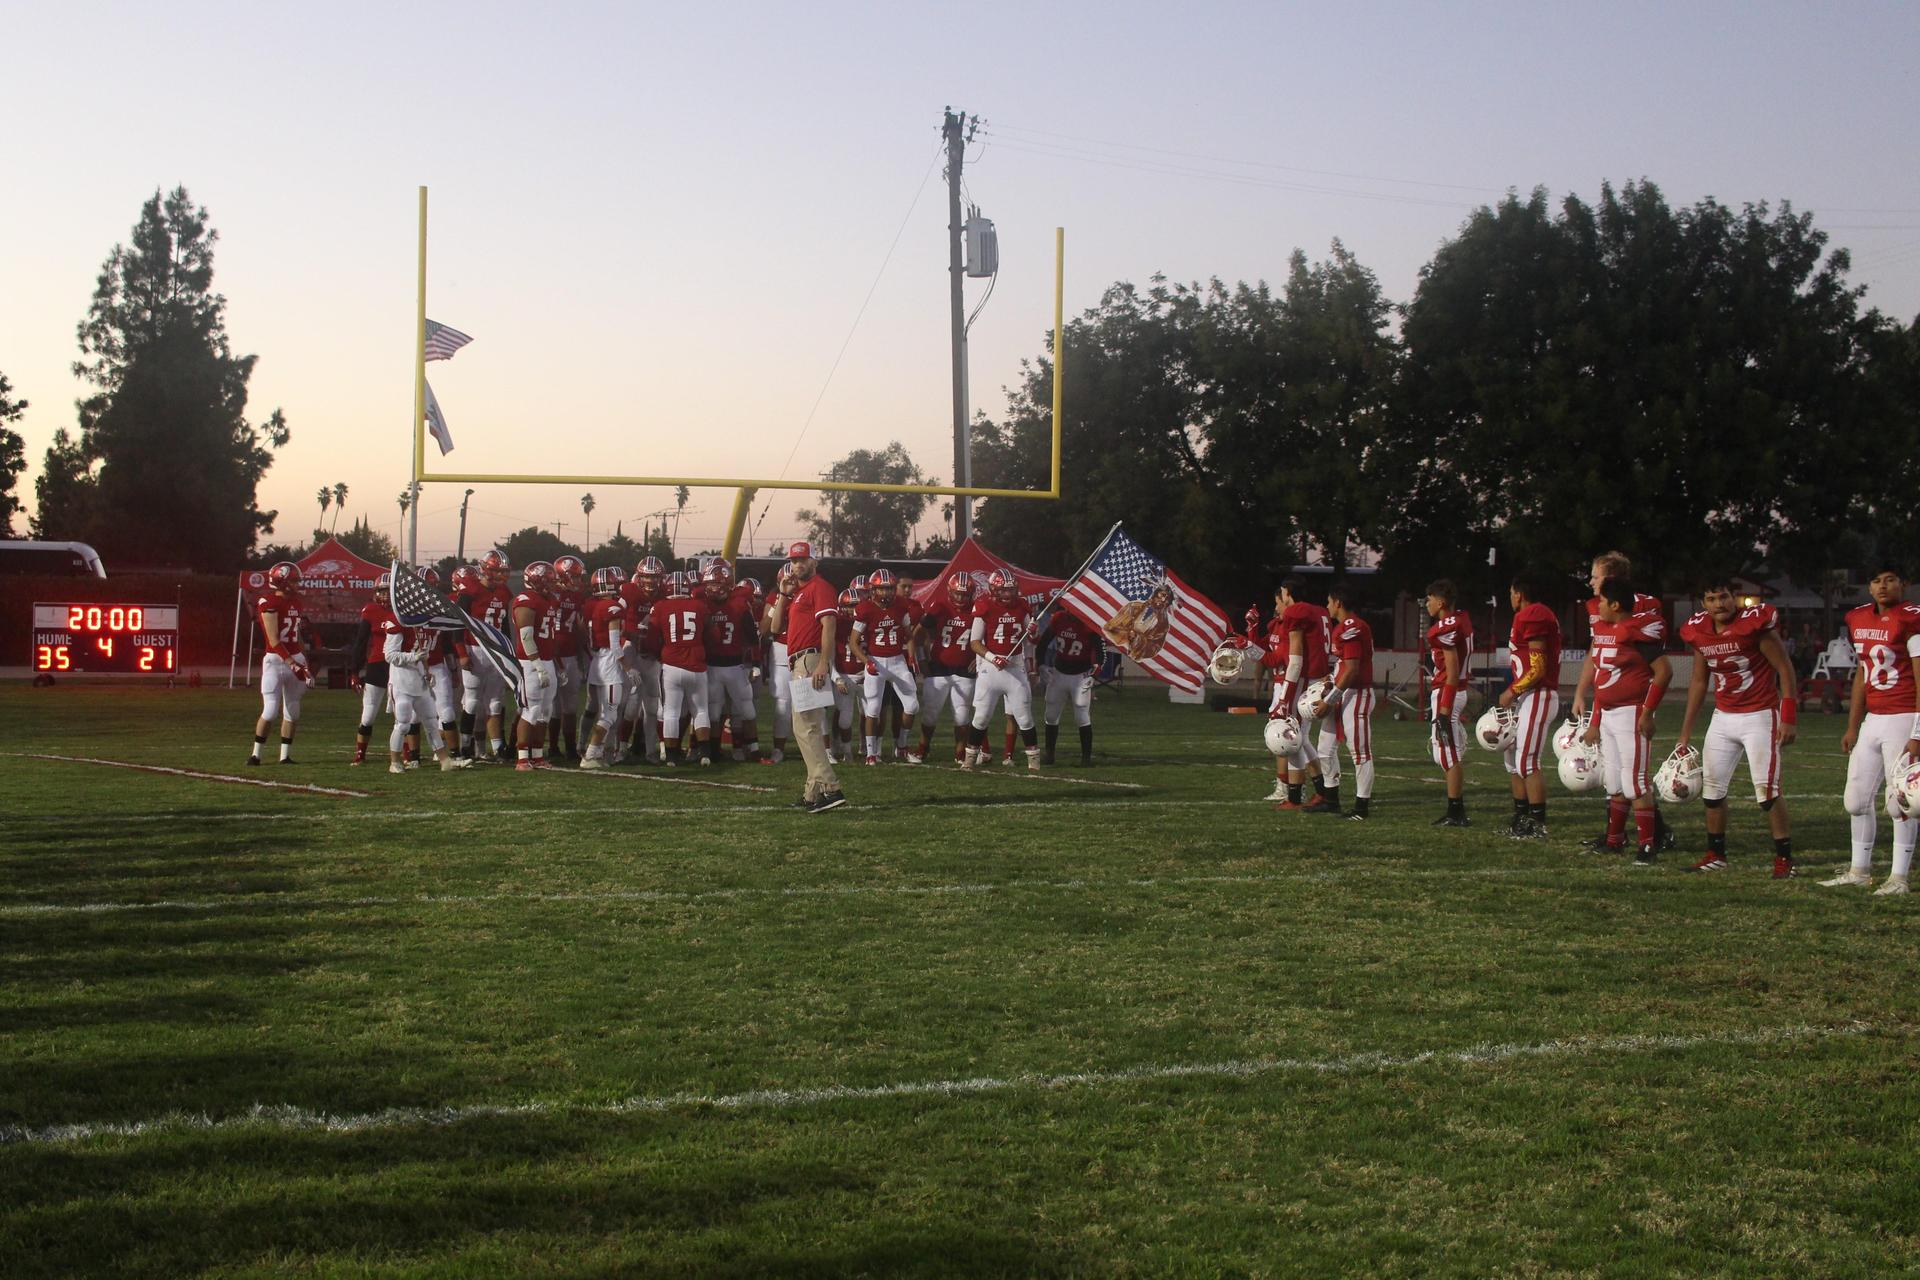 football team entering the stadium